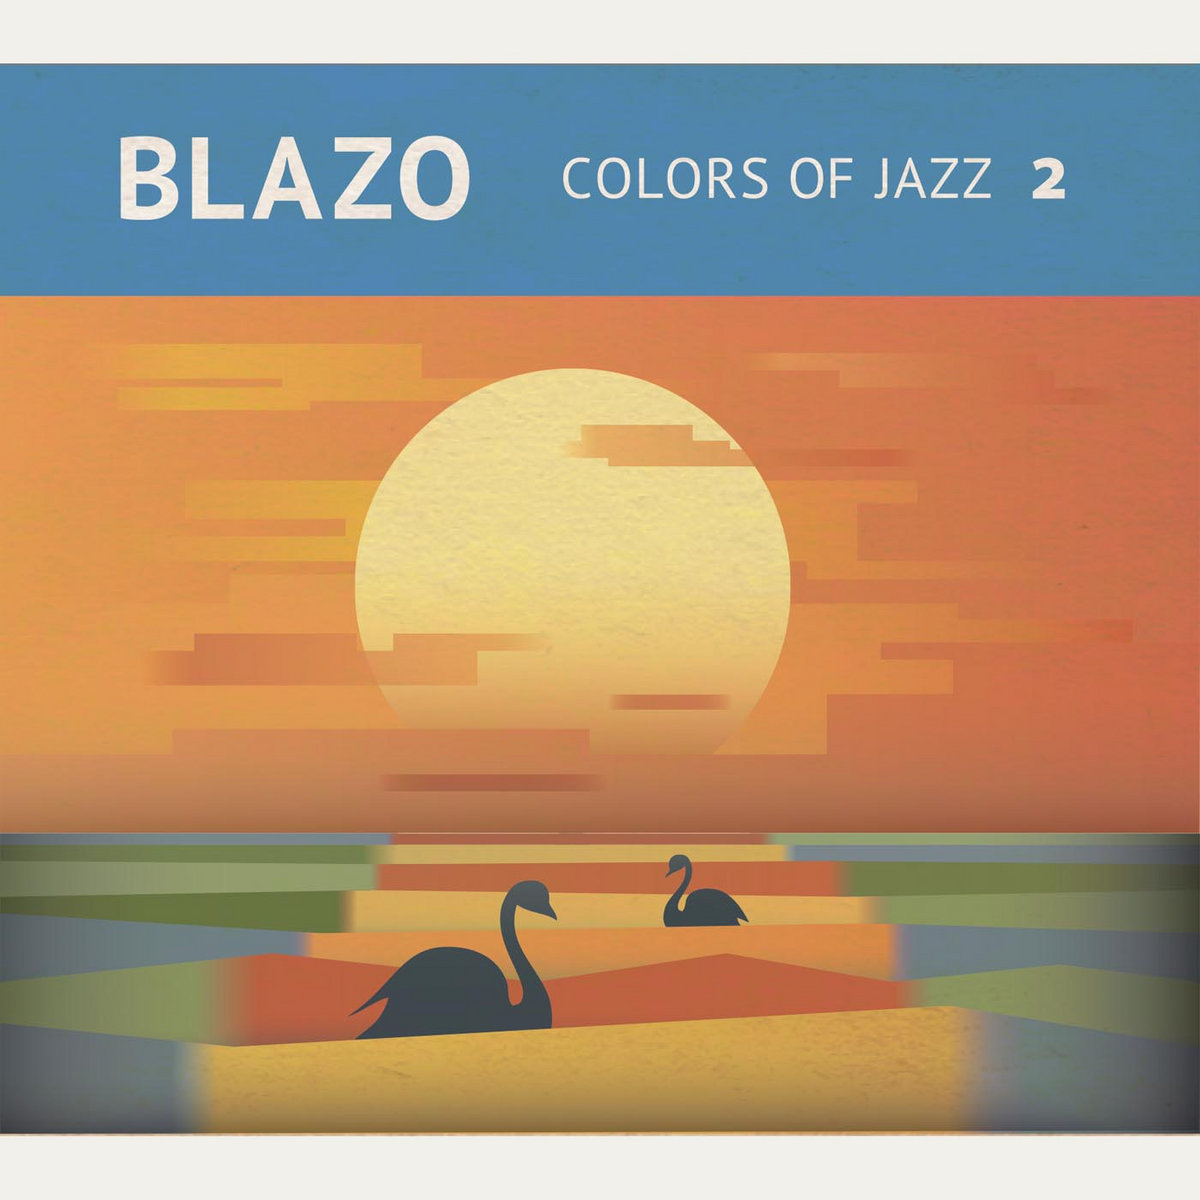 From Colors Of Jazz 2 By Blazo